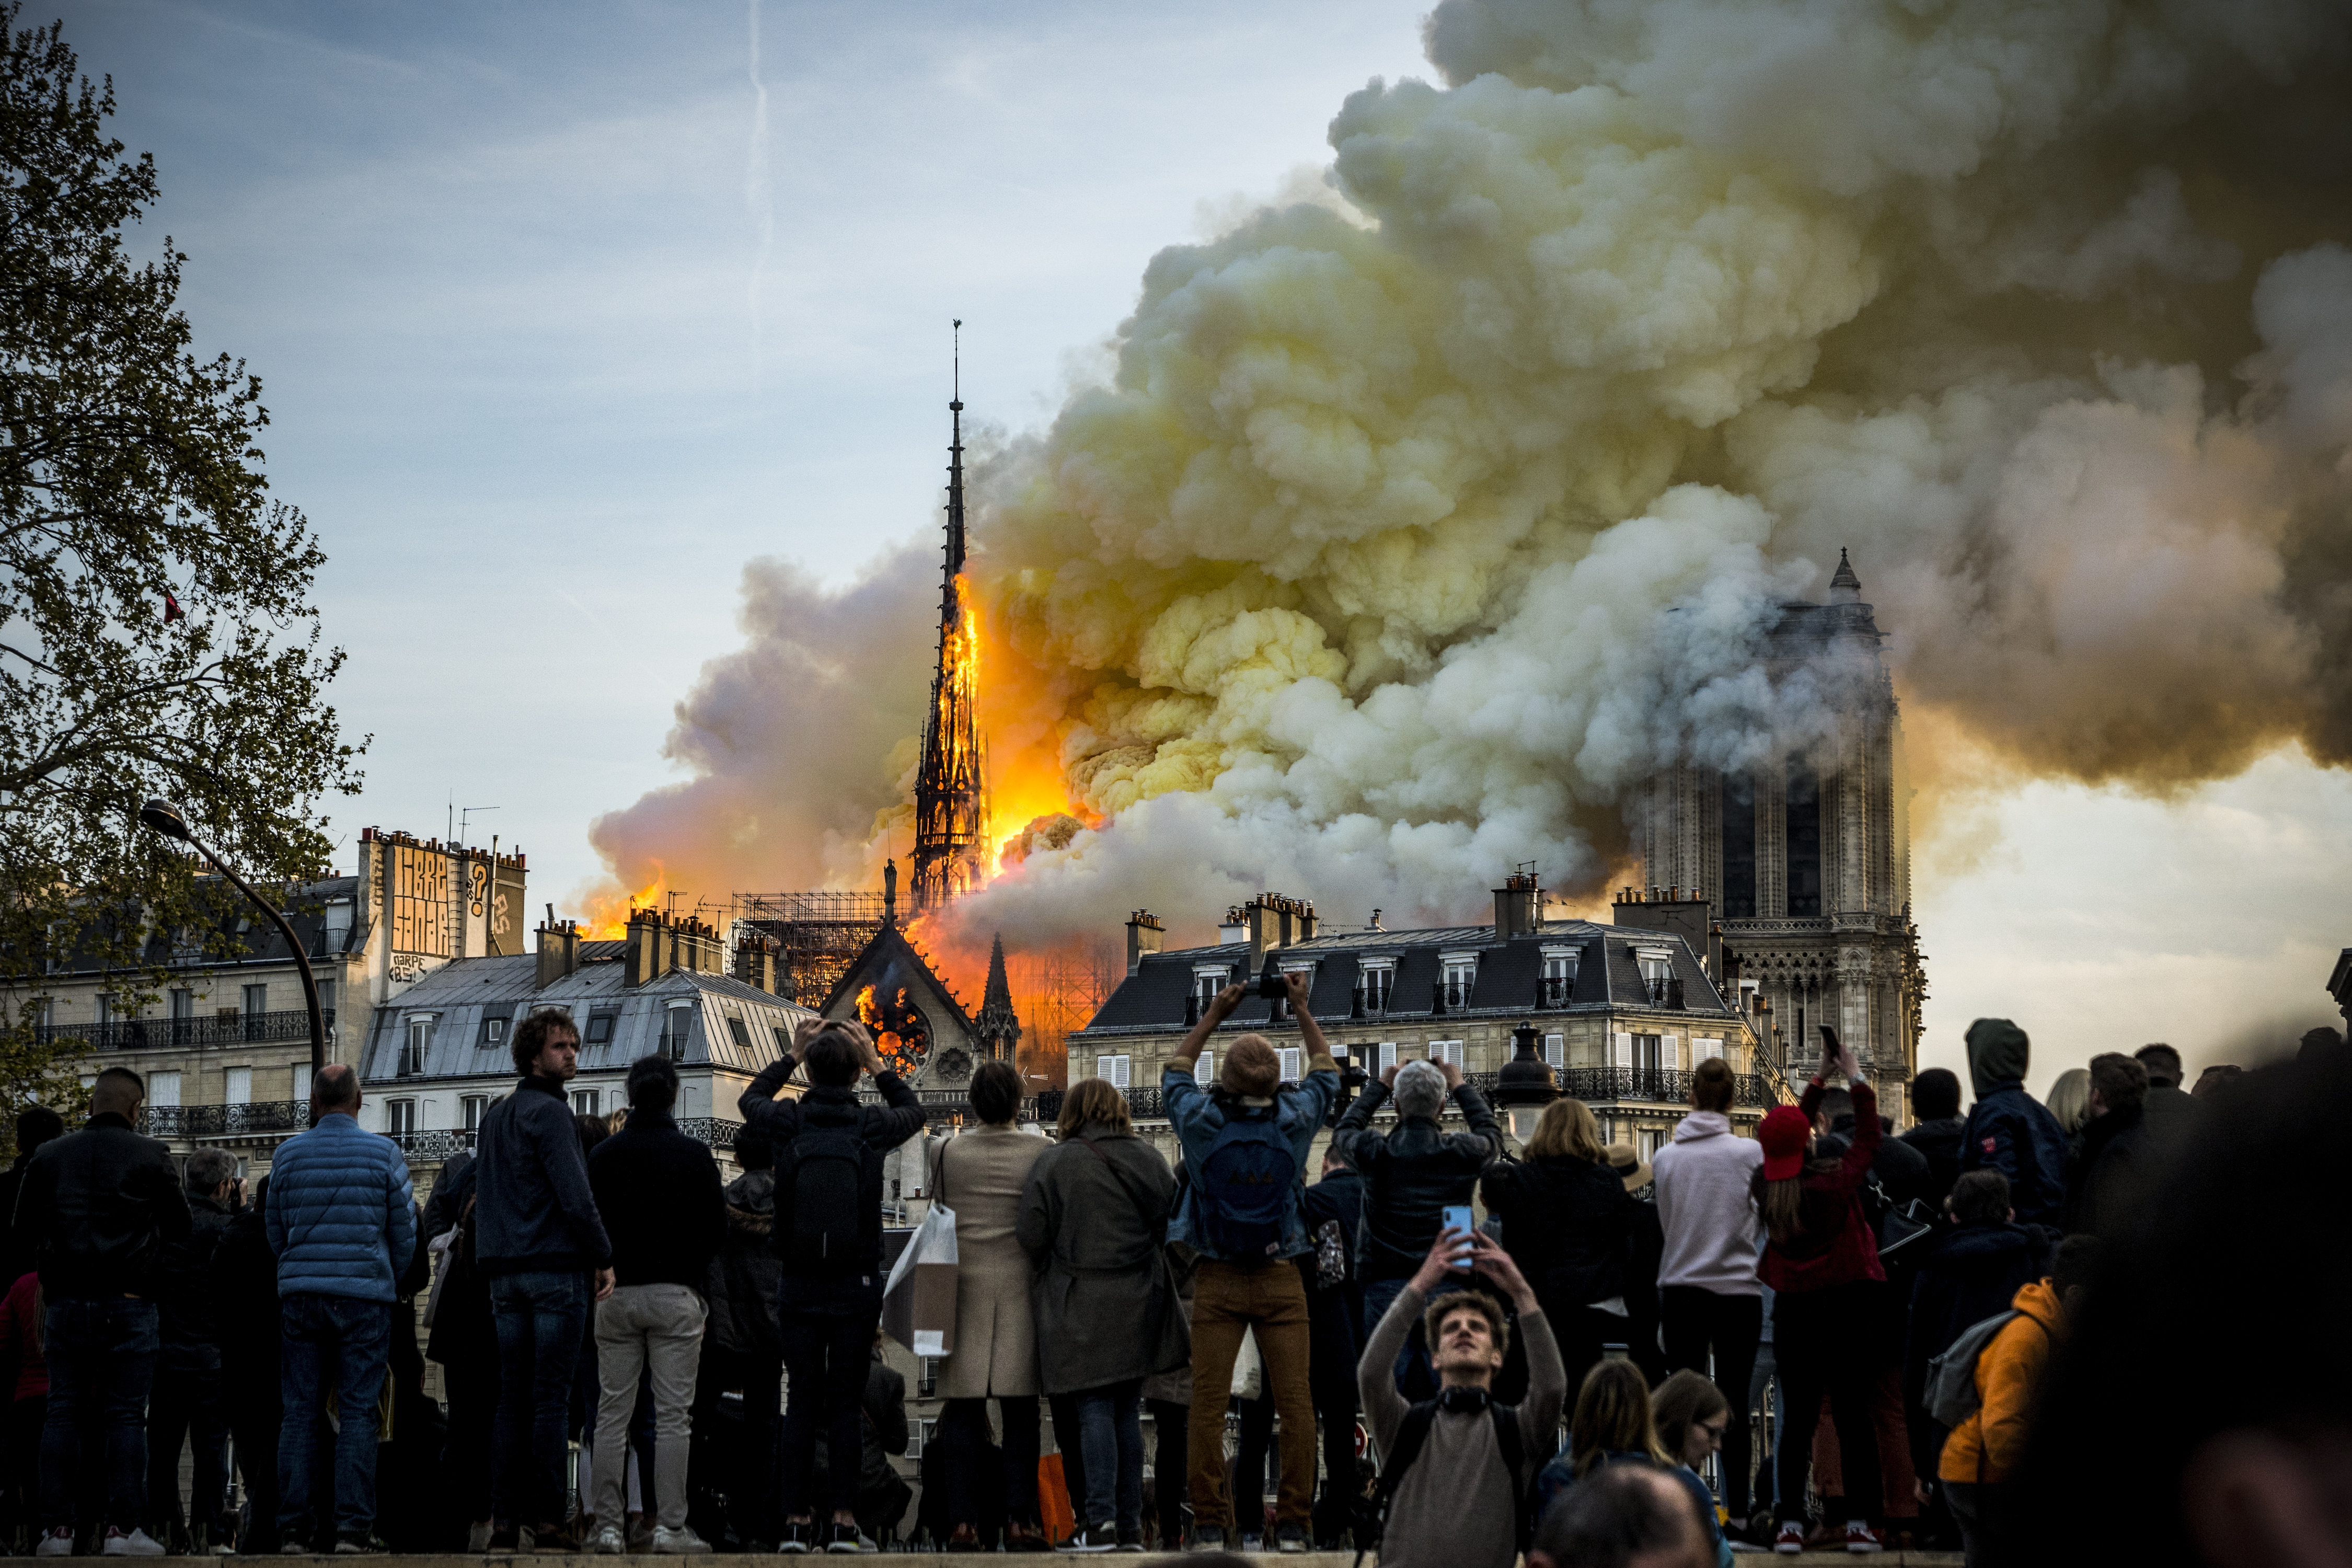 The Notre Dame Cathedral fire is a roofer's worst fear